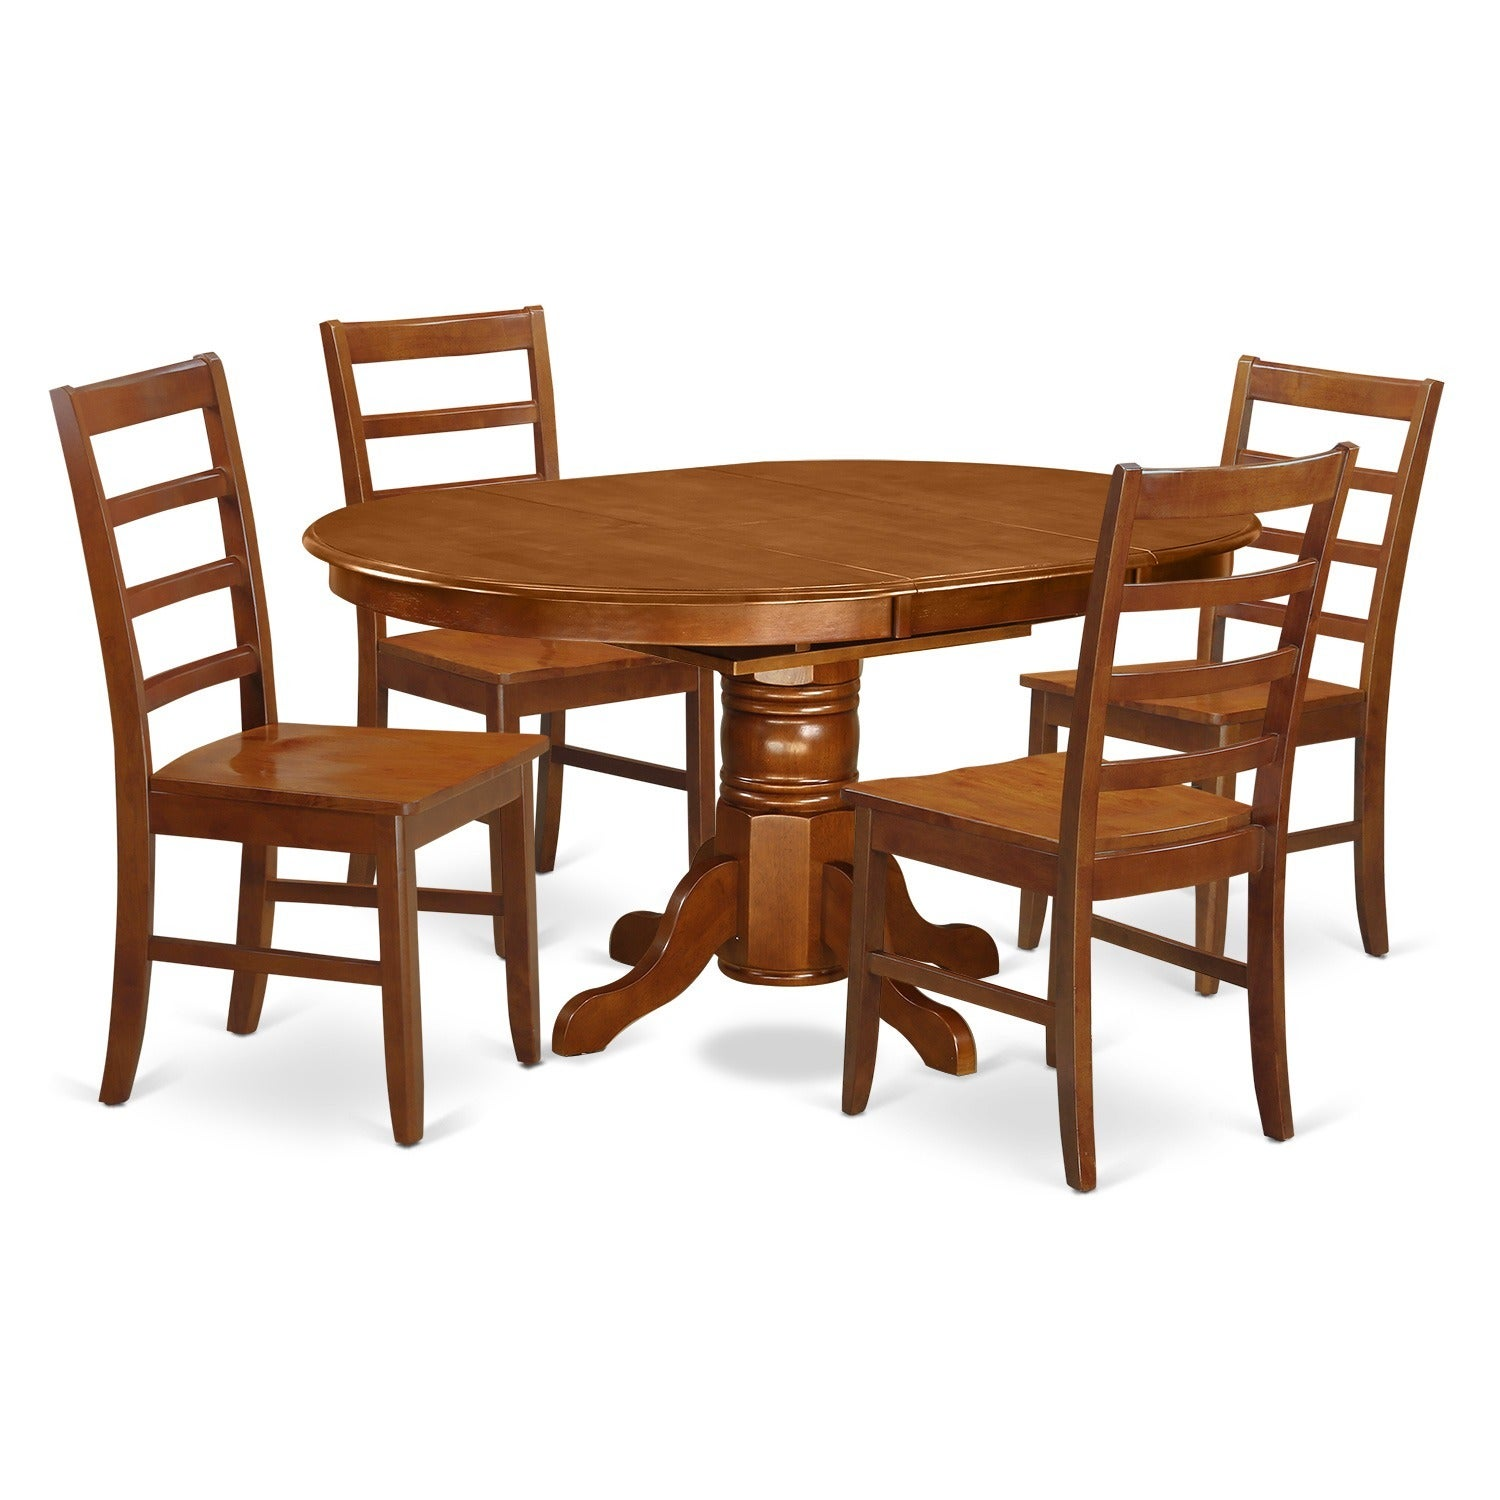 5-piece Dining Table with Leaf Plus 4 Dining Chairs (Sadd...